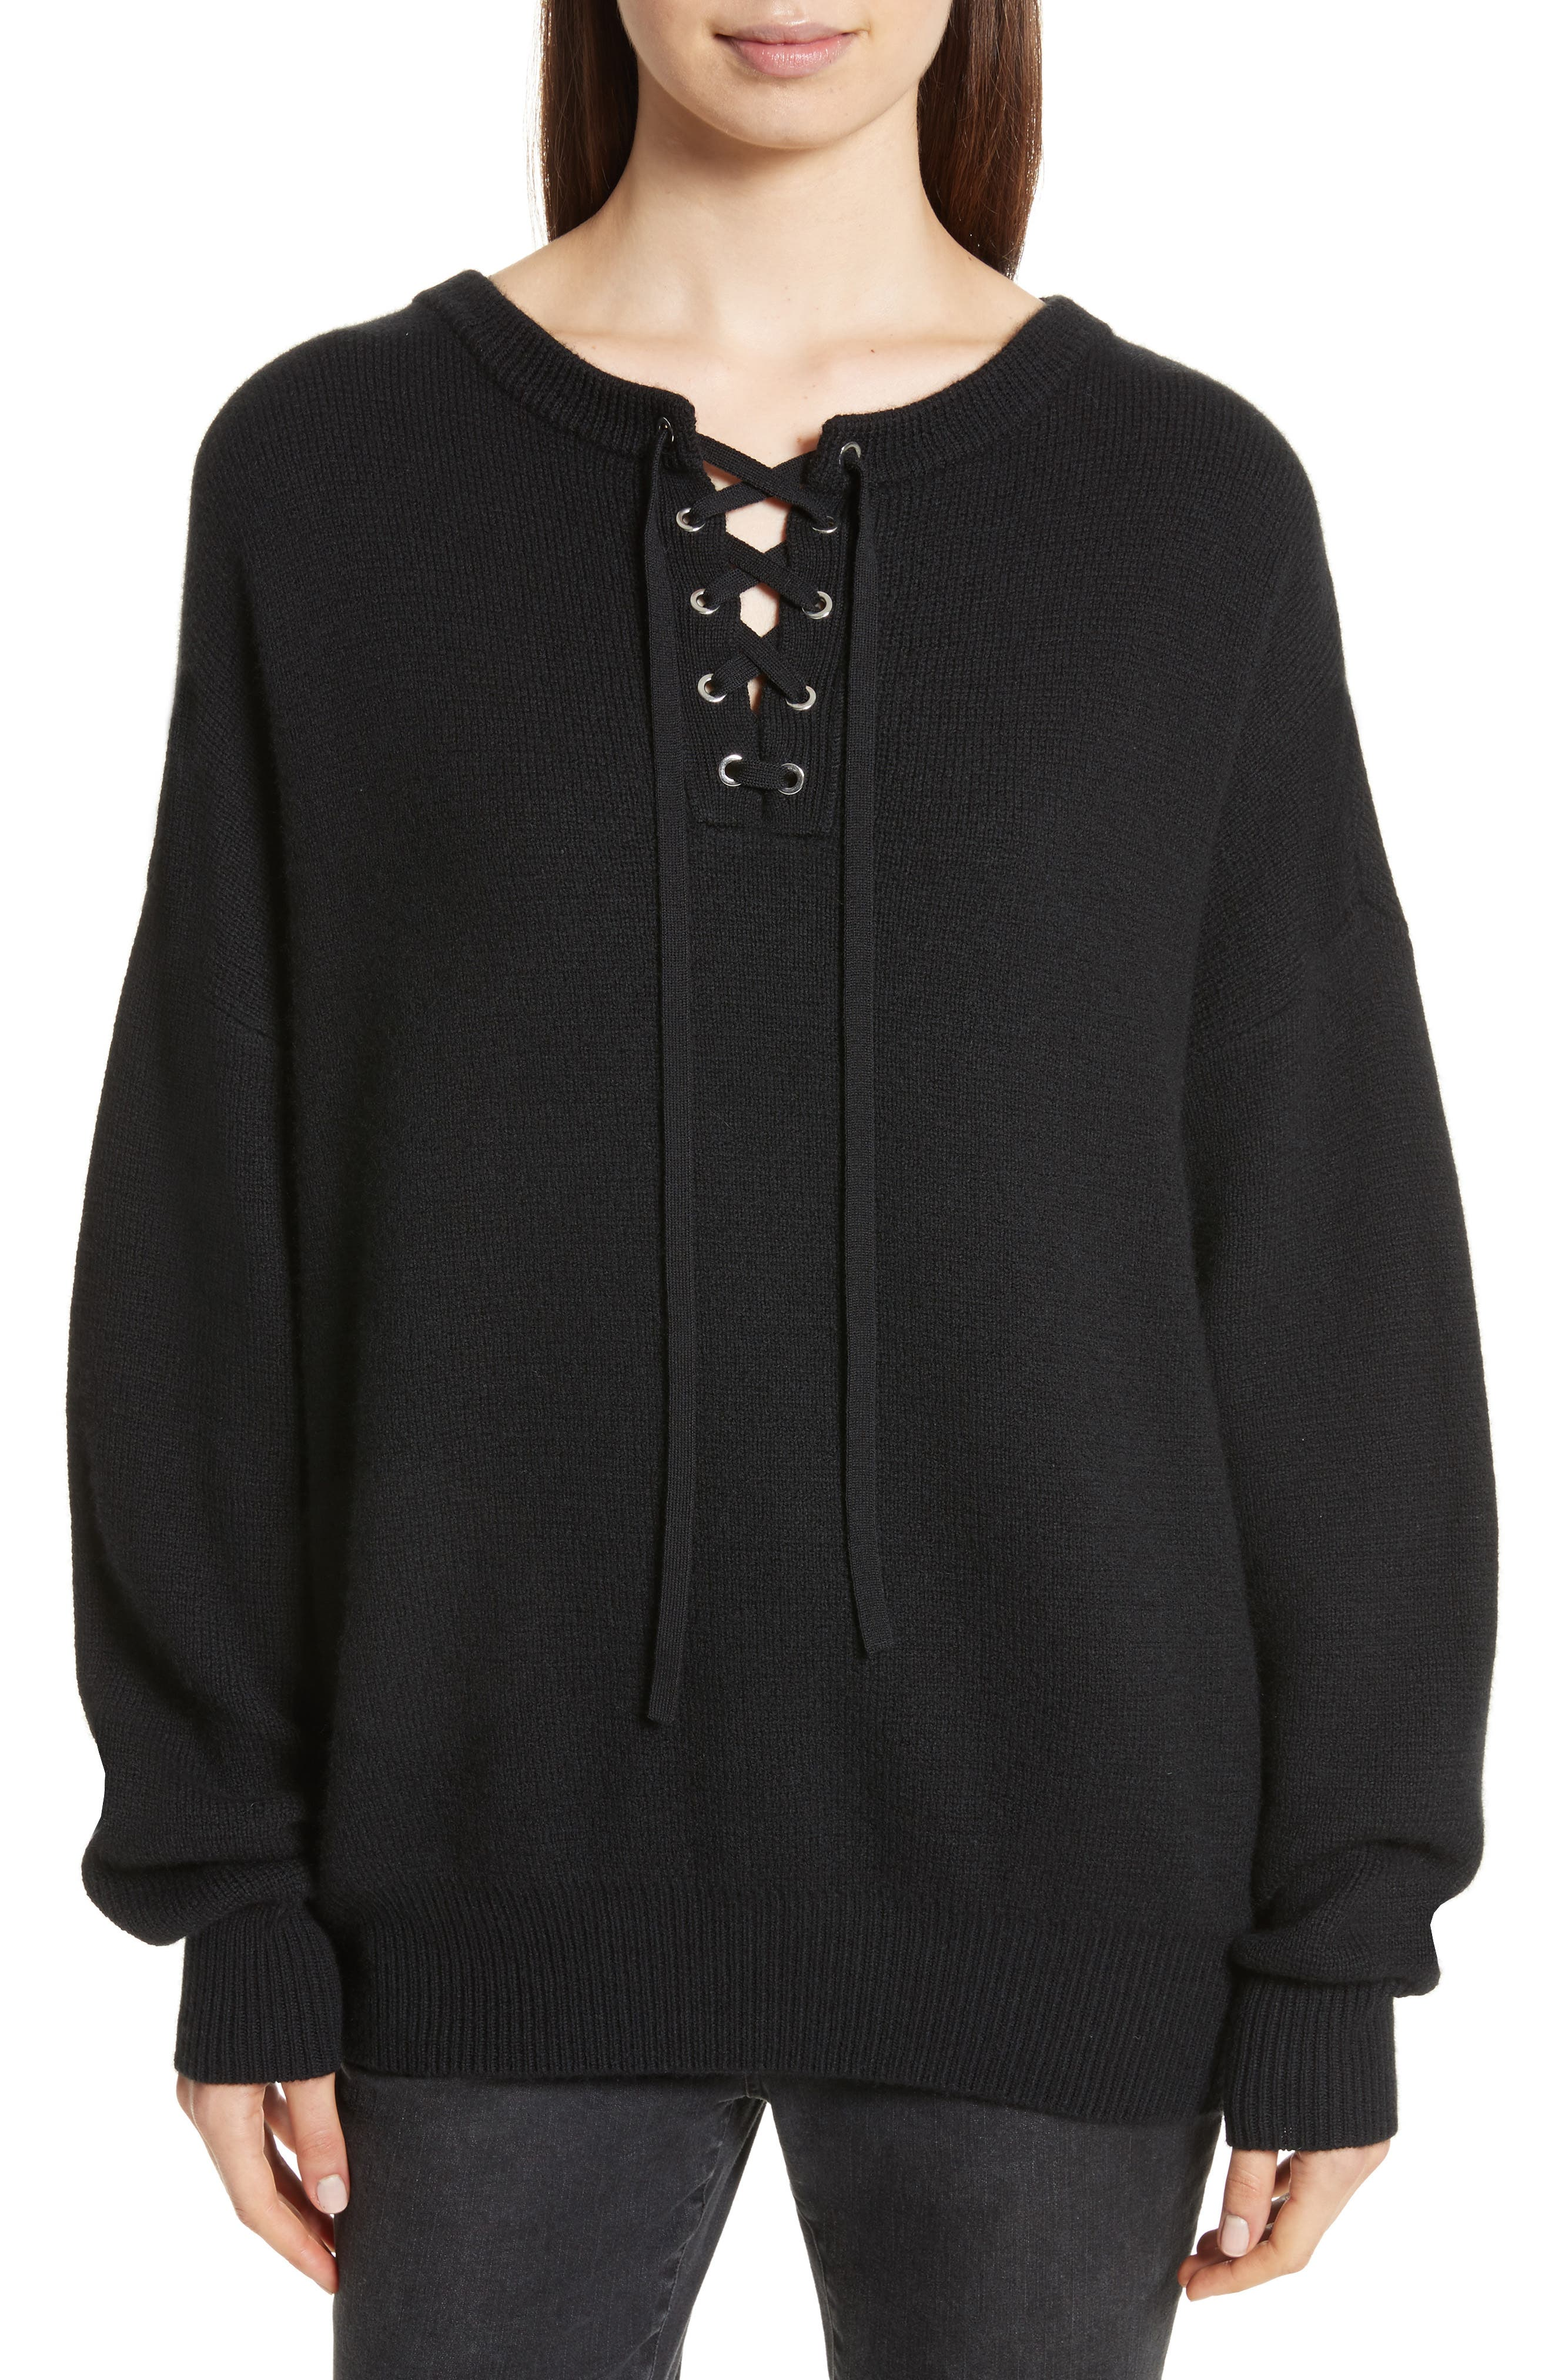 ROBERT RODRIGUEZ Lace-Up Merino Wool & Cashmere Sweater